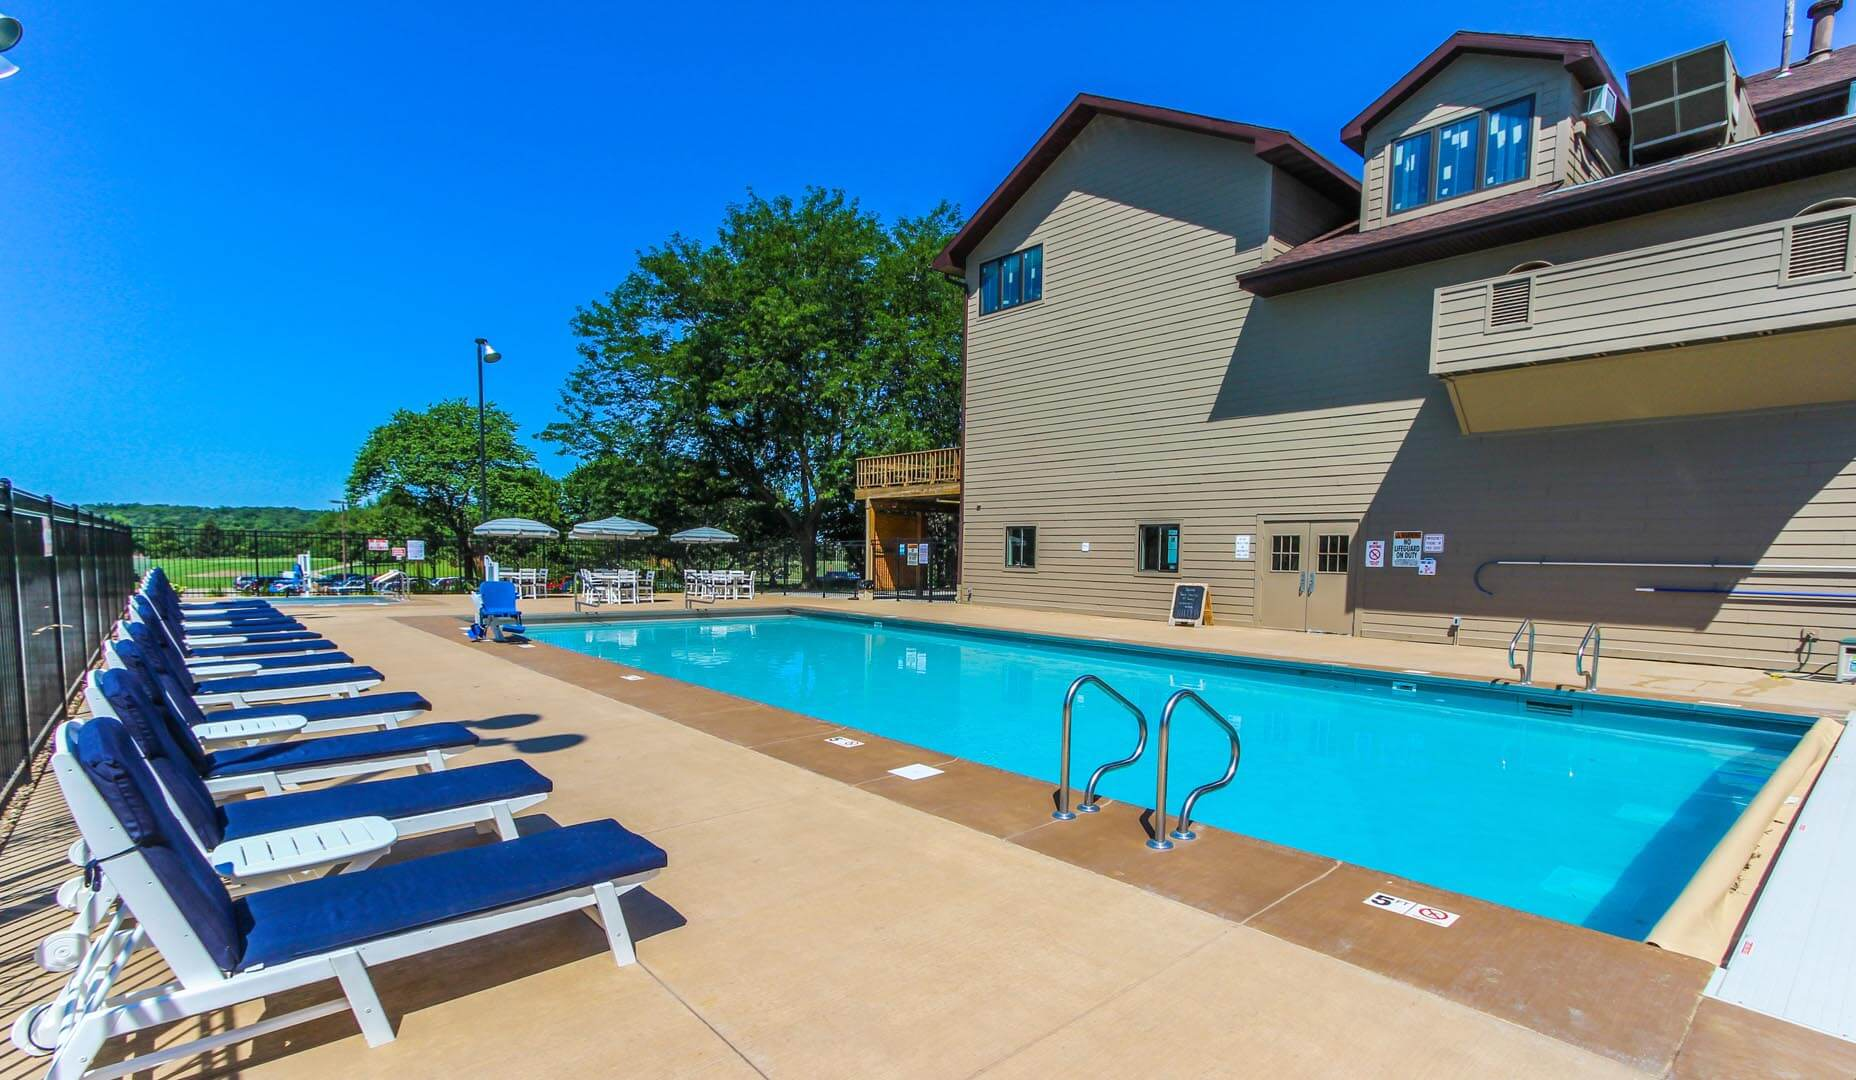 Clover Ridge Resort Pool